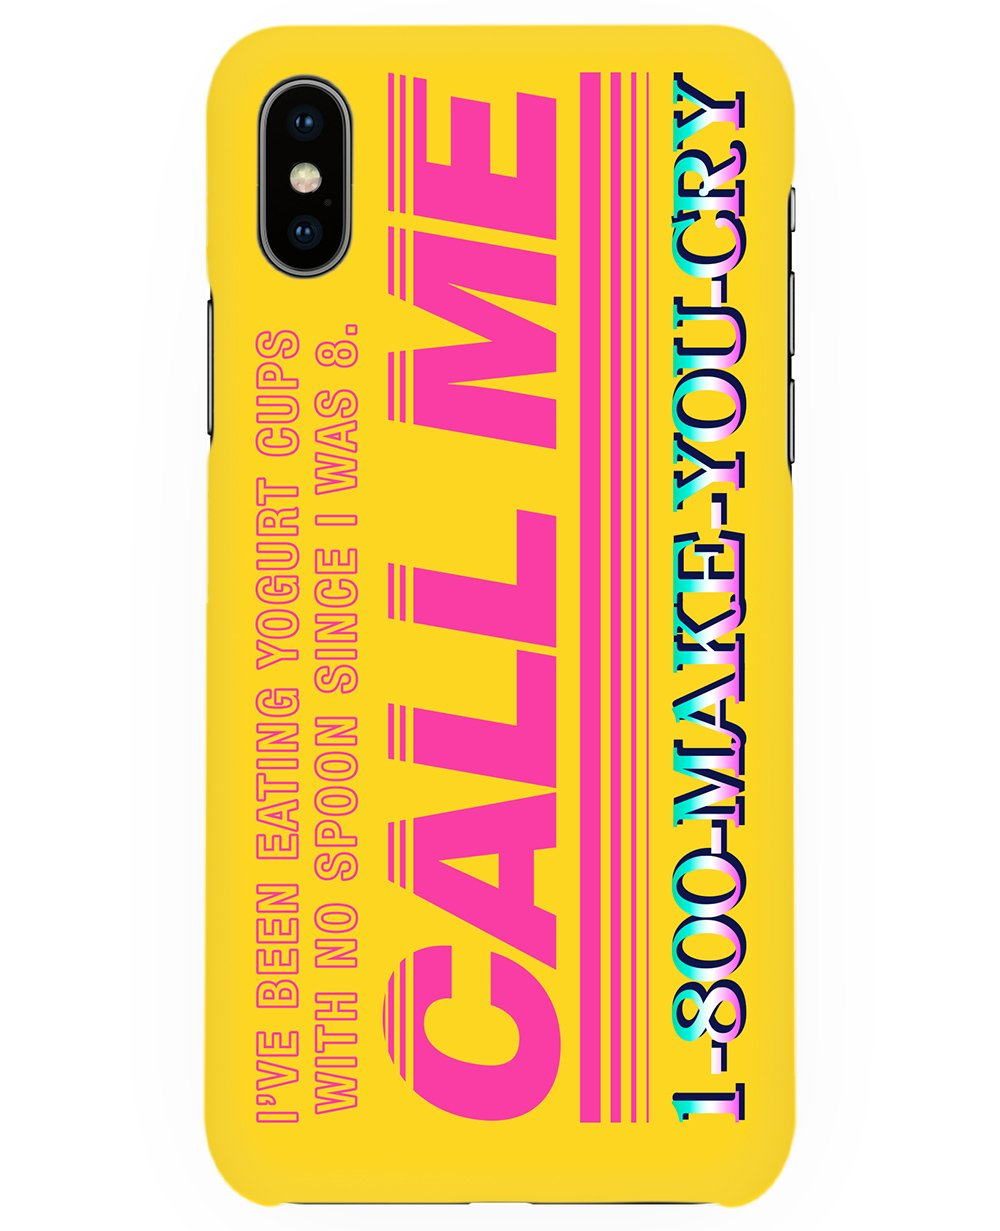 Call Me Print Iphone case - Phone cases - FOOD PORN CLUB - BRANMA